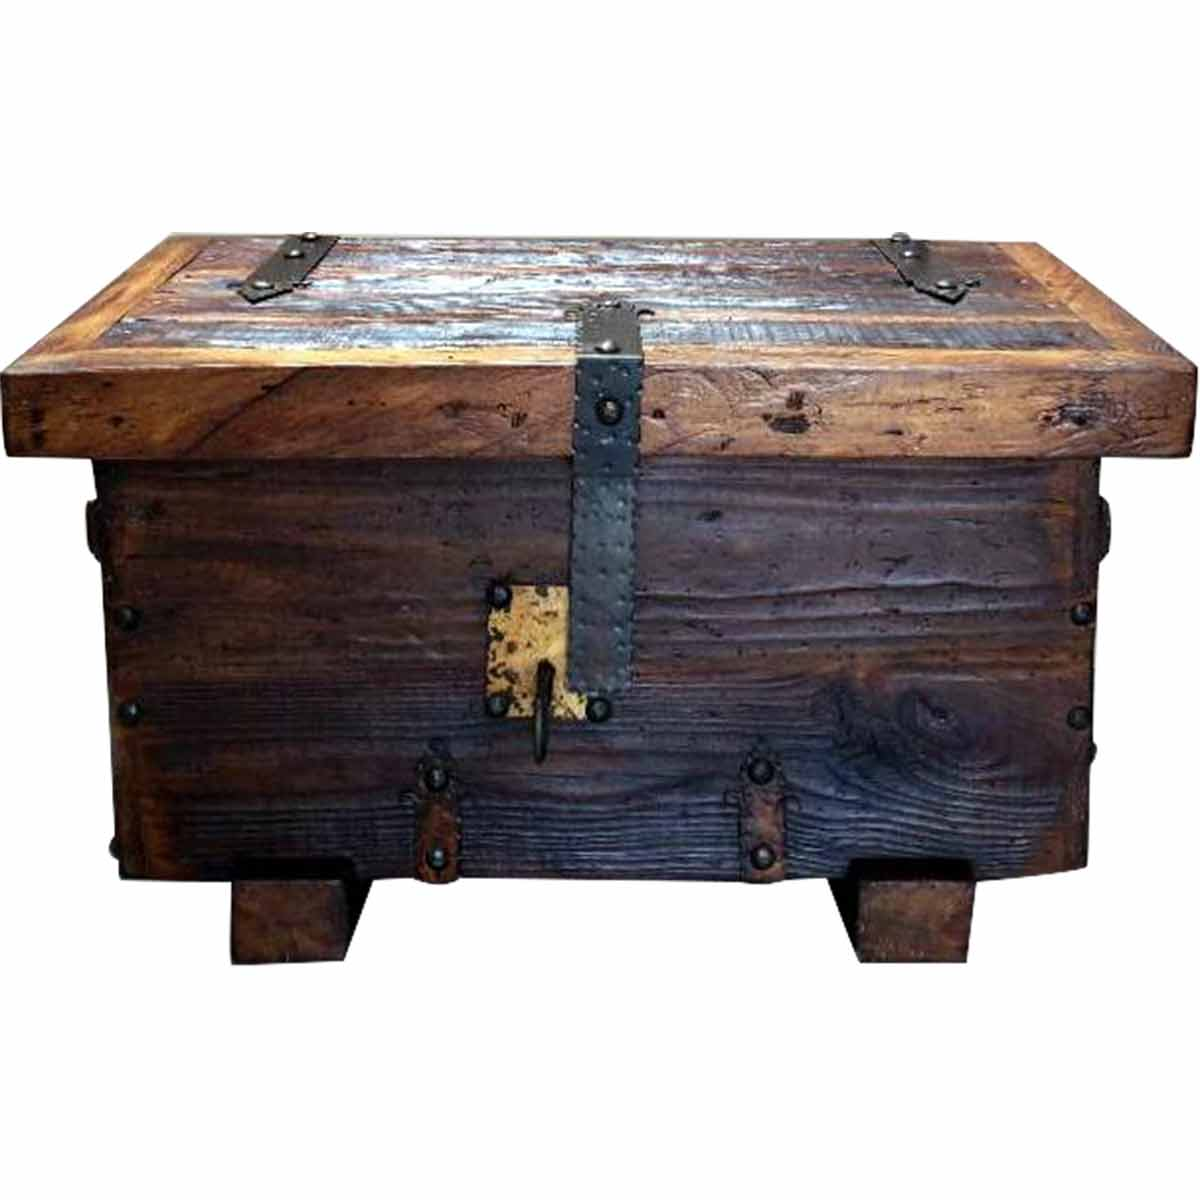 Recycled Wood Chest with Lock and Key